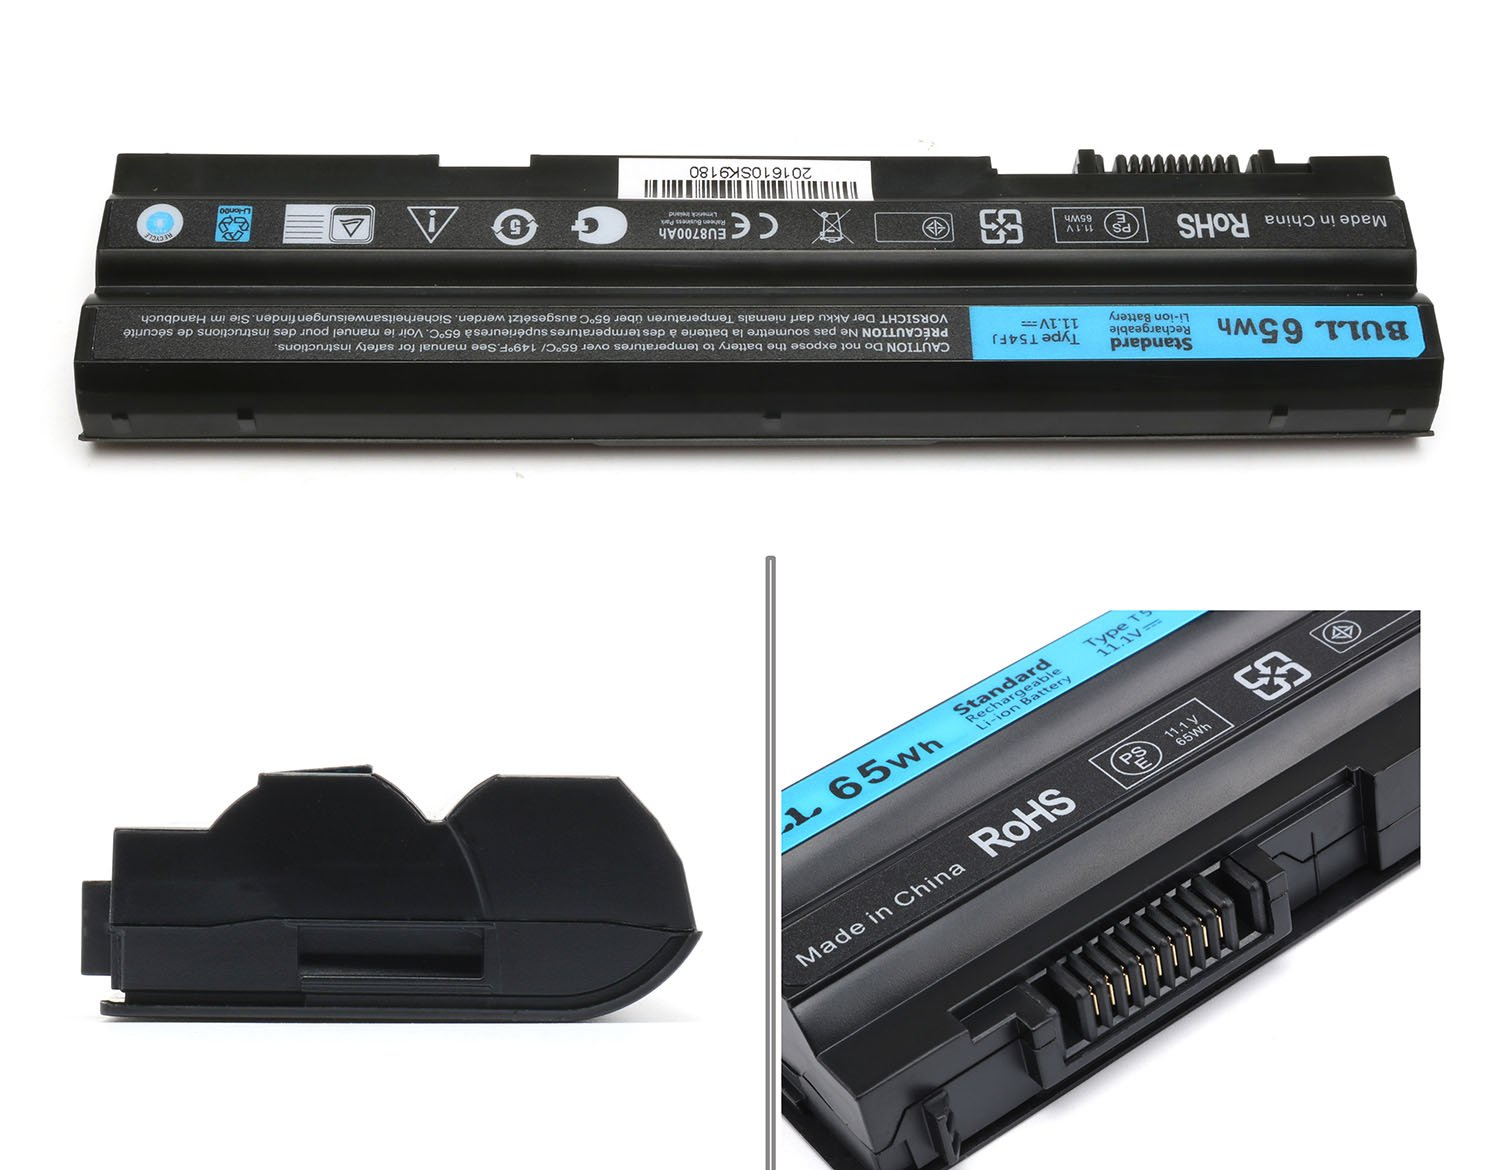 BULL-TECH 11.1V T54FJ New Laptop Battery for Dell Latitude E5420 E5520 E6420 E6520 Compatible P/N: M5Y0X 312-1163 HCJWT 7FJ92 by BULL-TECH (Image #2)